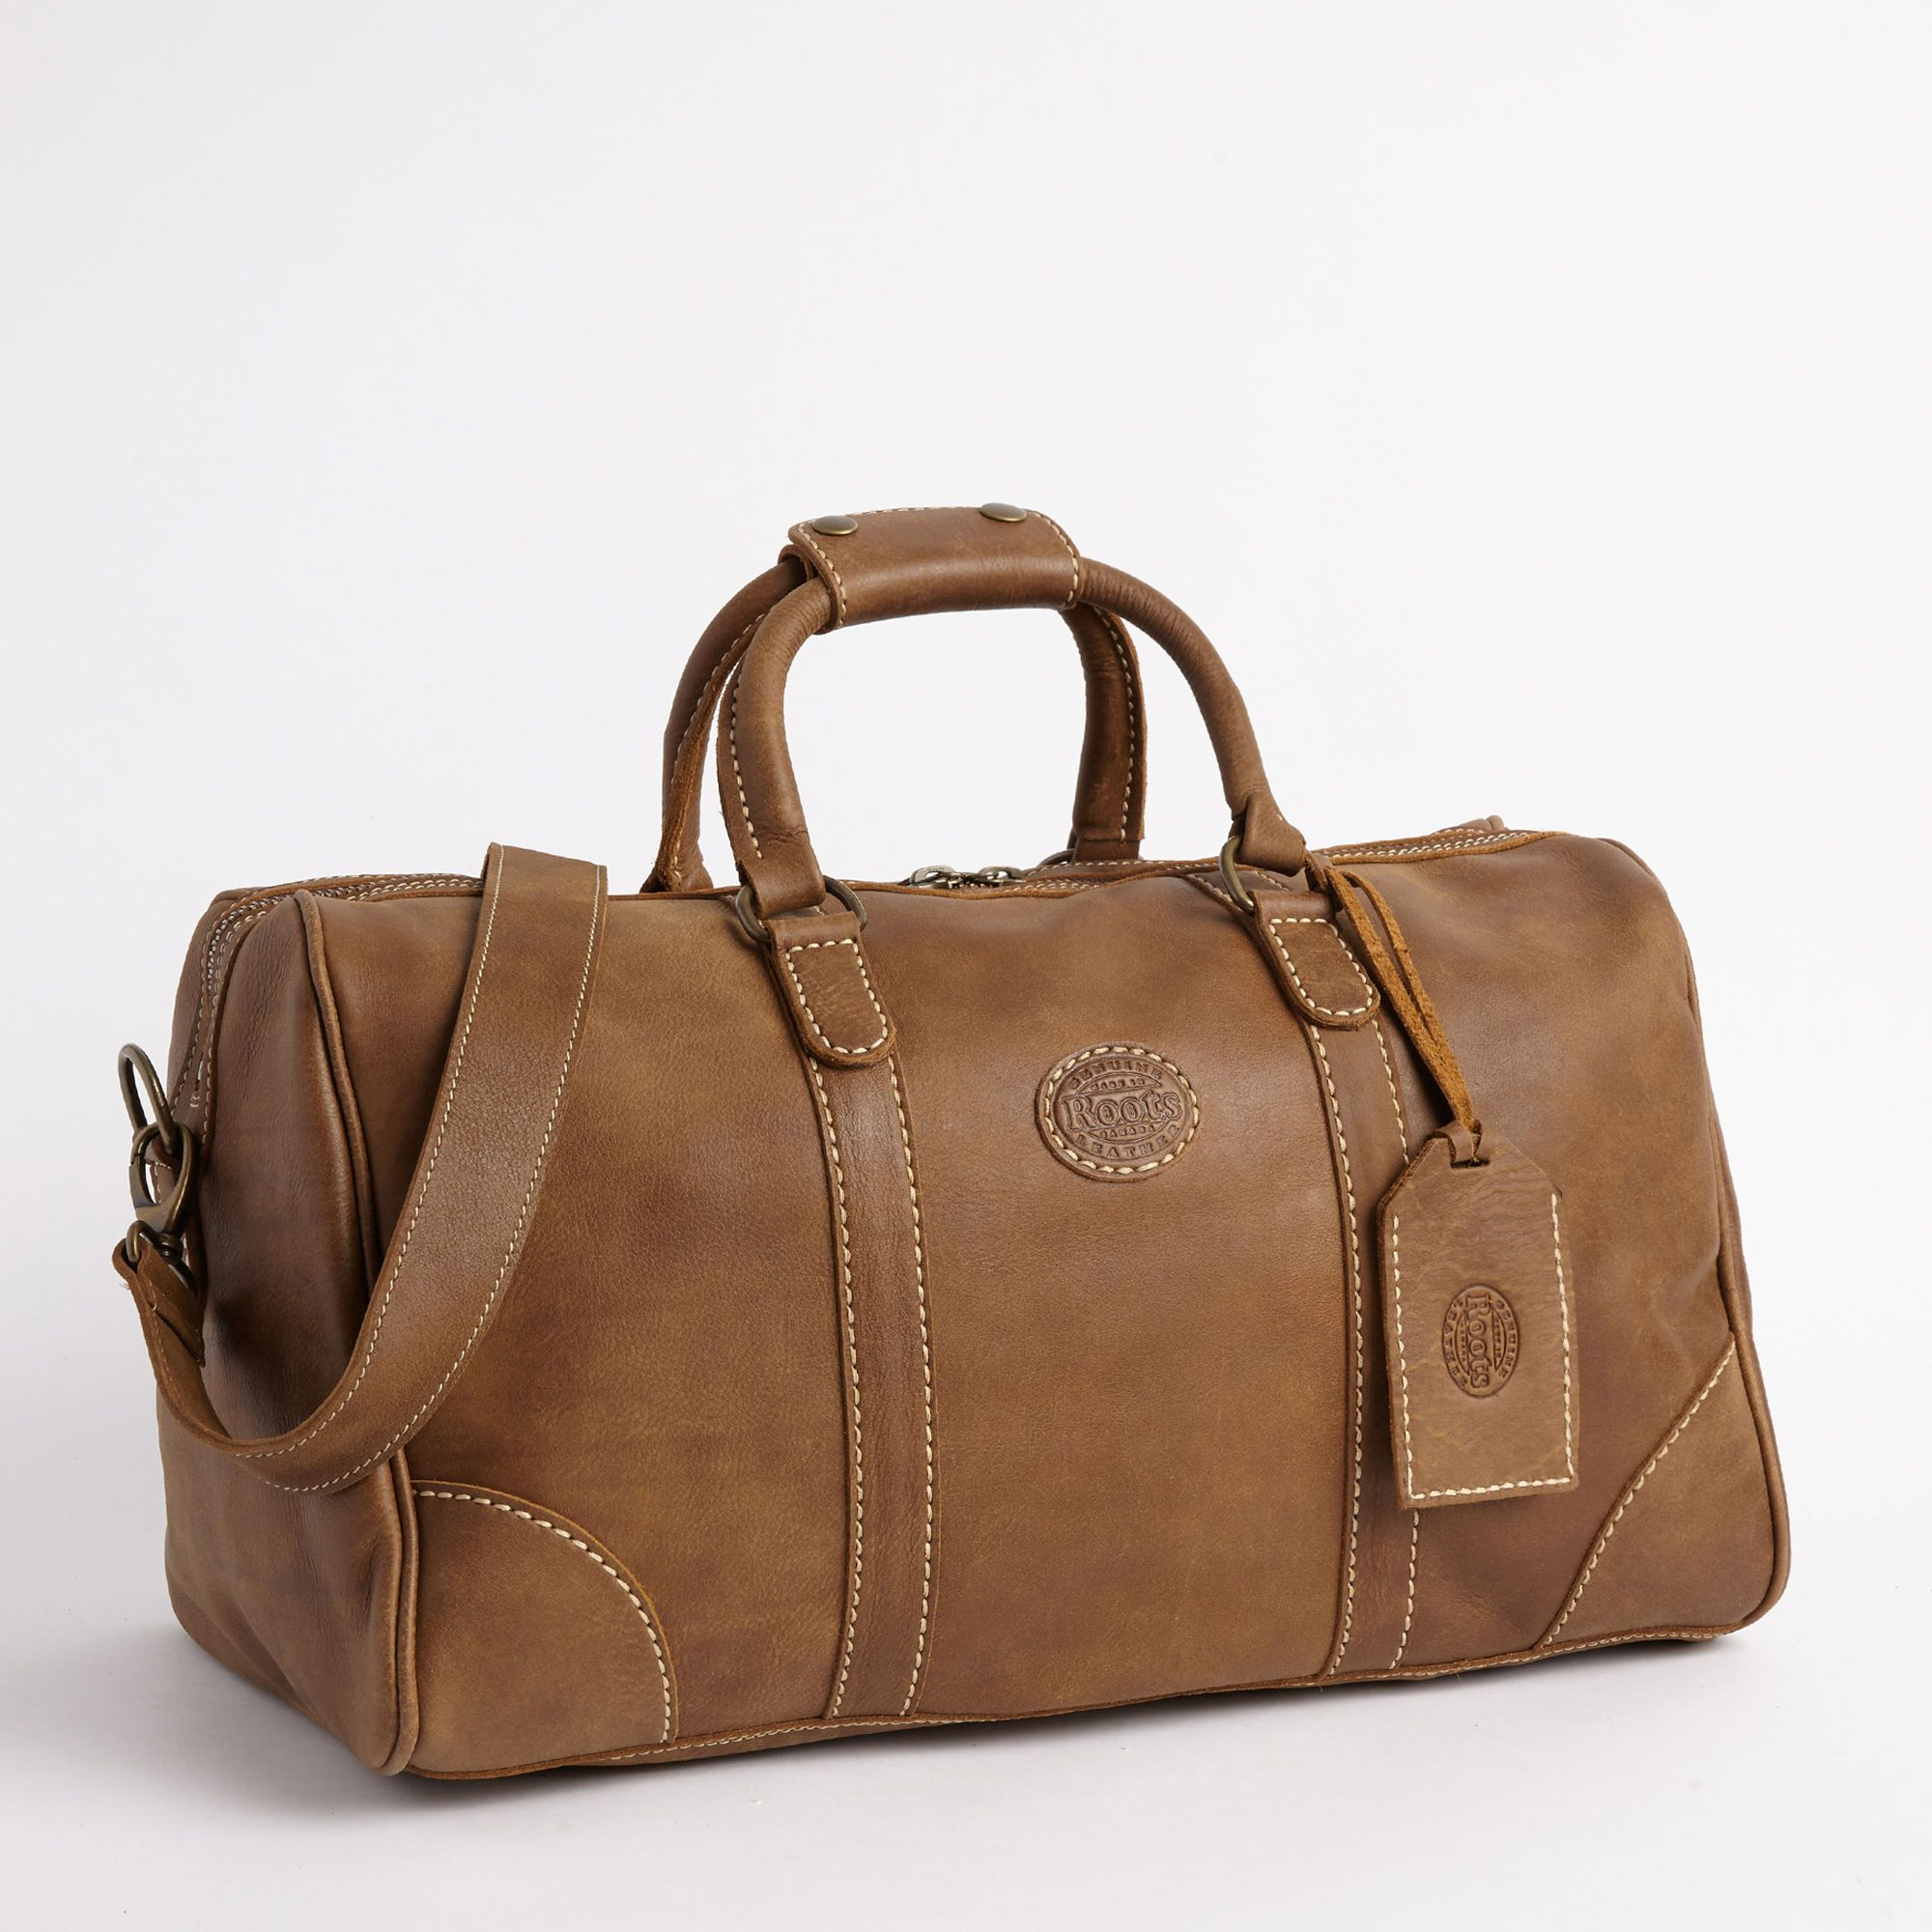 Small Banff Bag In Vintage Tribe Leather Weekender Bags Roots